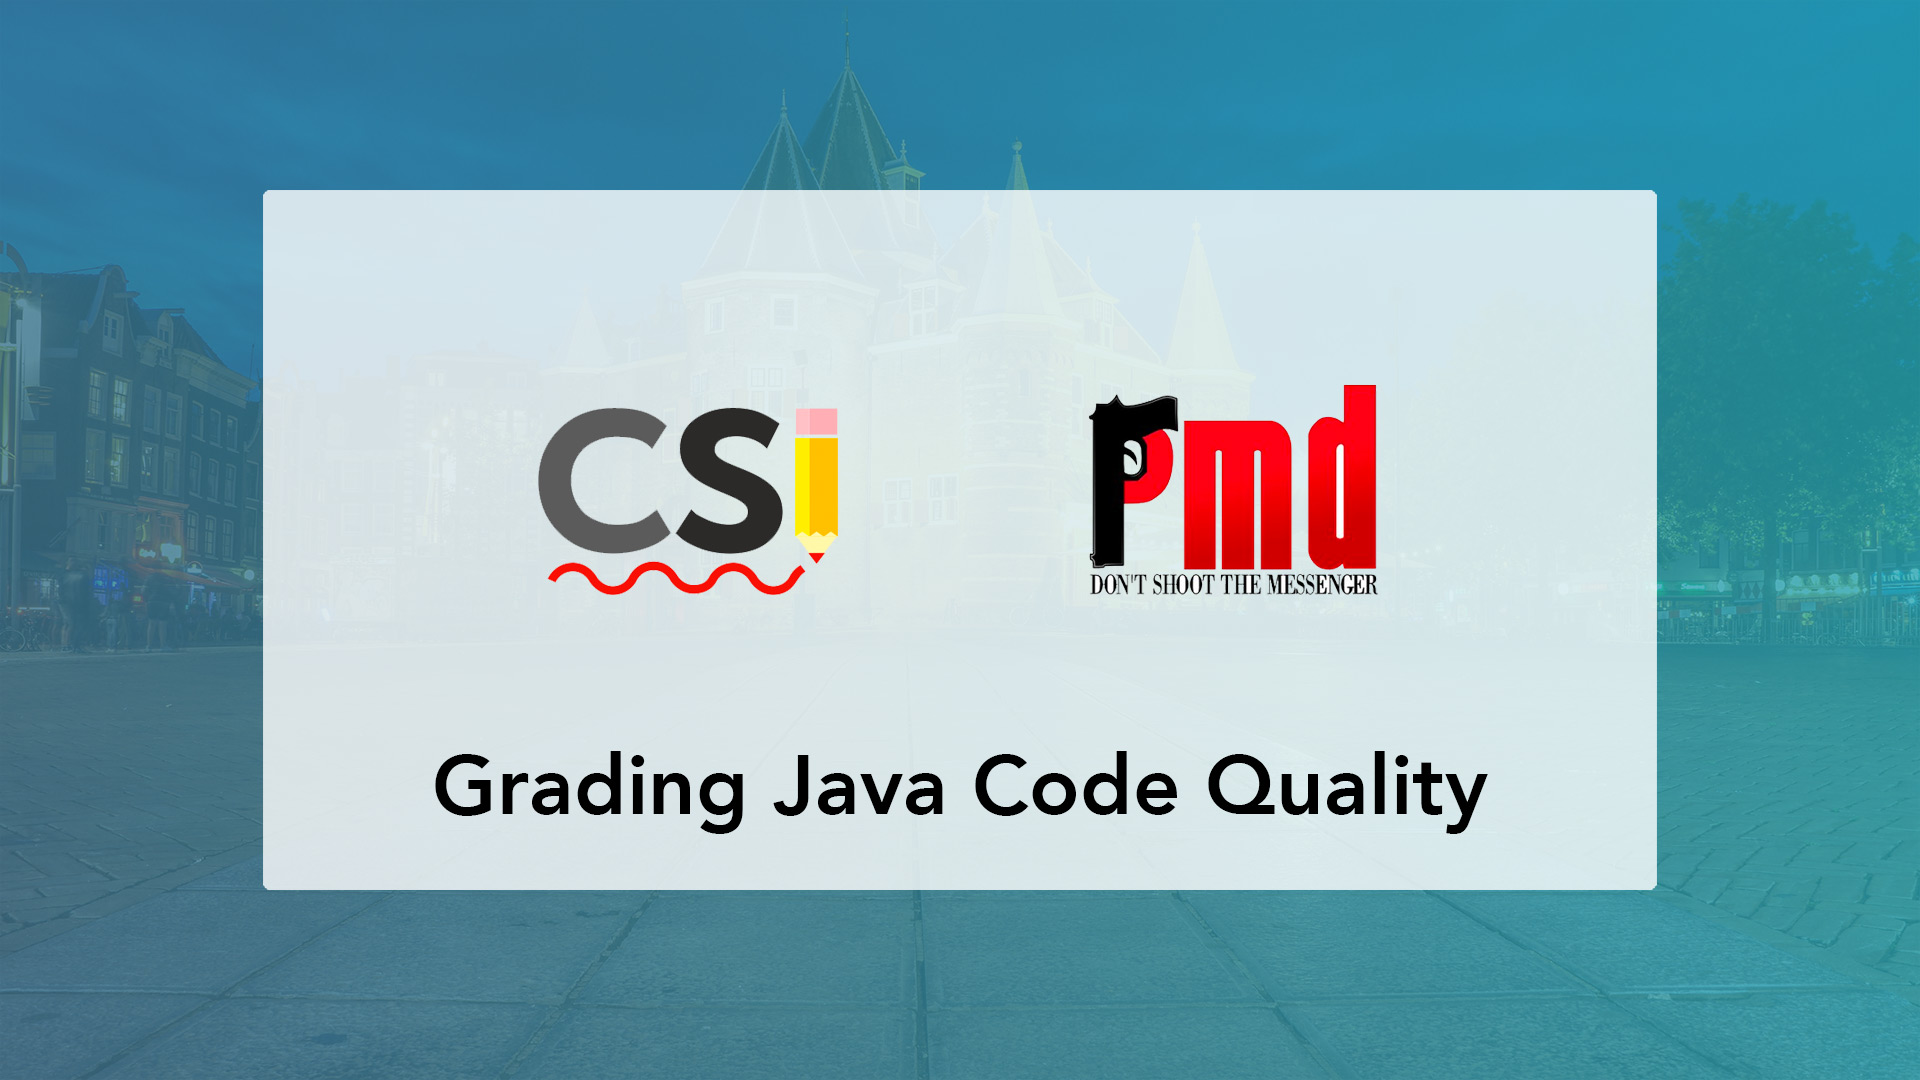 Autograding Java code projects on code quality, code style and bad practices using Checkstyle and PMD